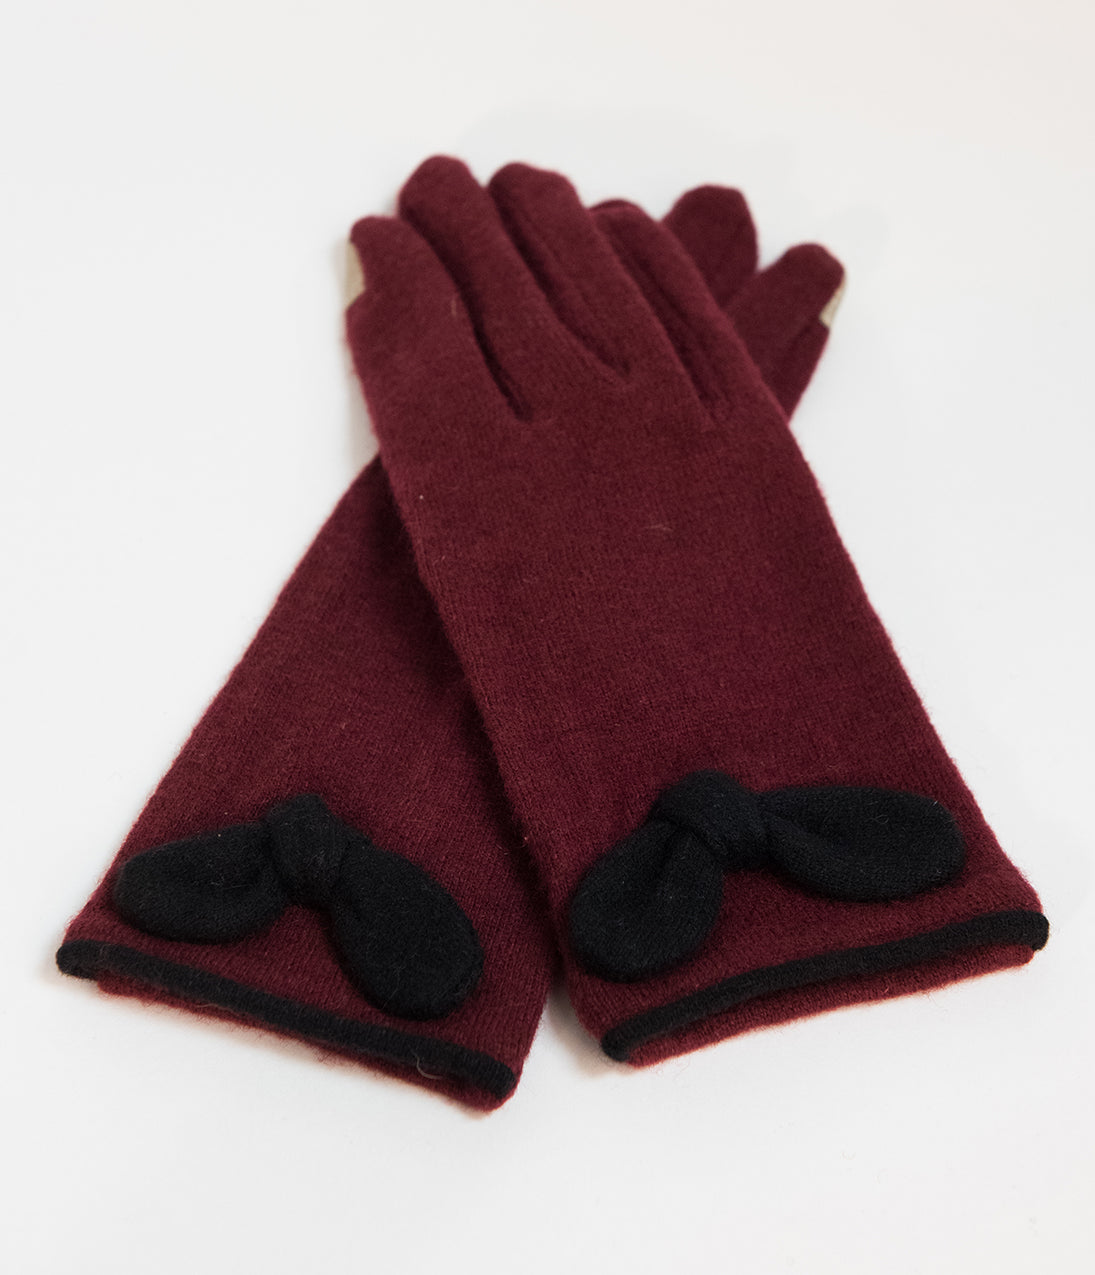 Vintage Style Gloves- Long, Wrist, Evening, Day, Leather, Lace Unique Vintage Red Wool Bow Wrist Gloves $20.00 AT vintagedancer.com